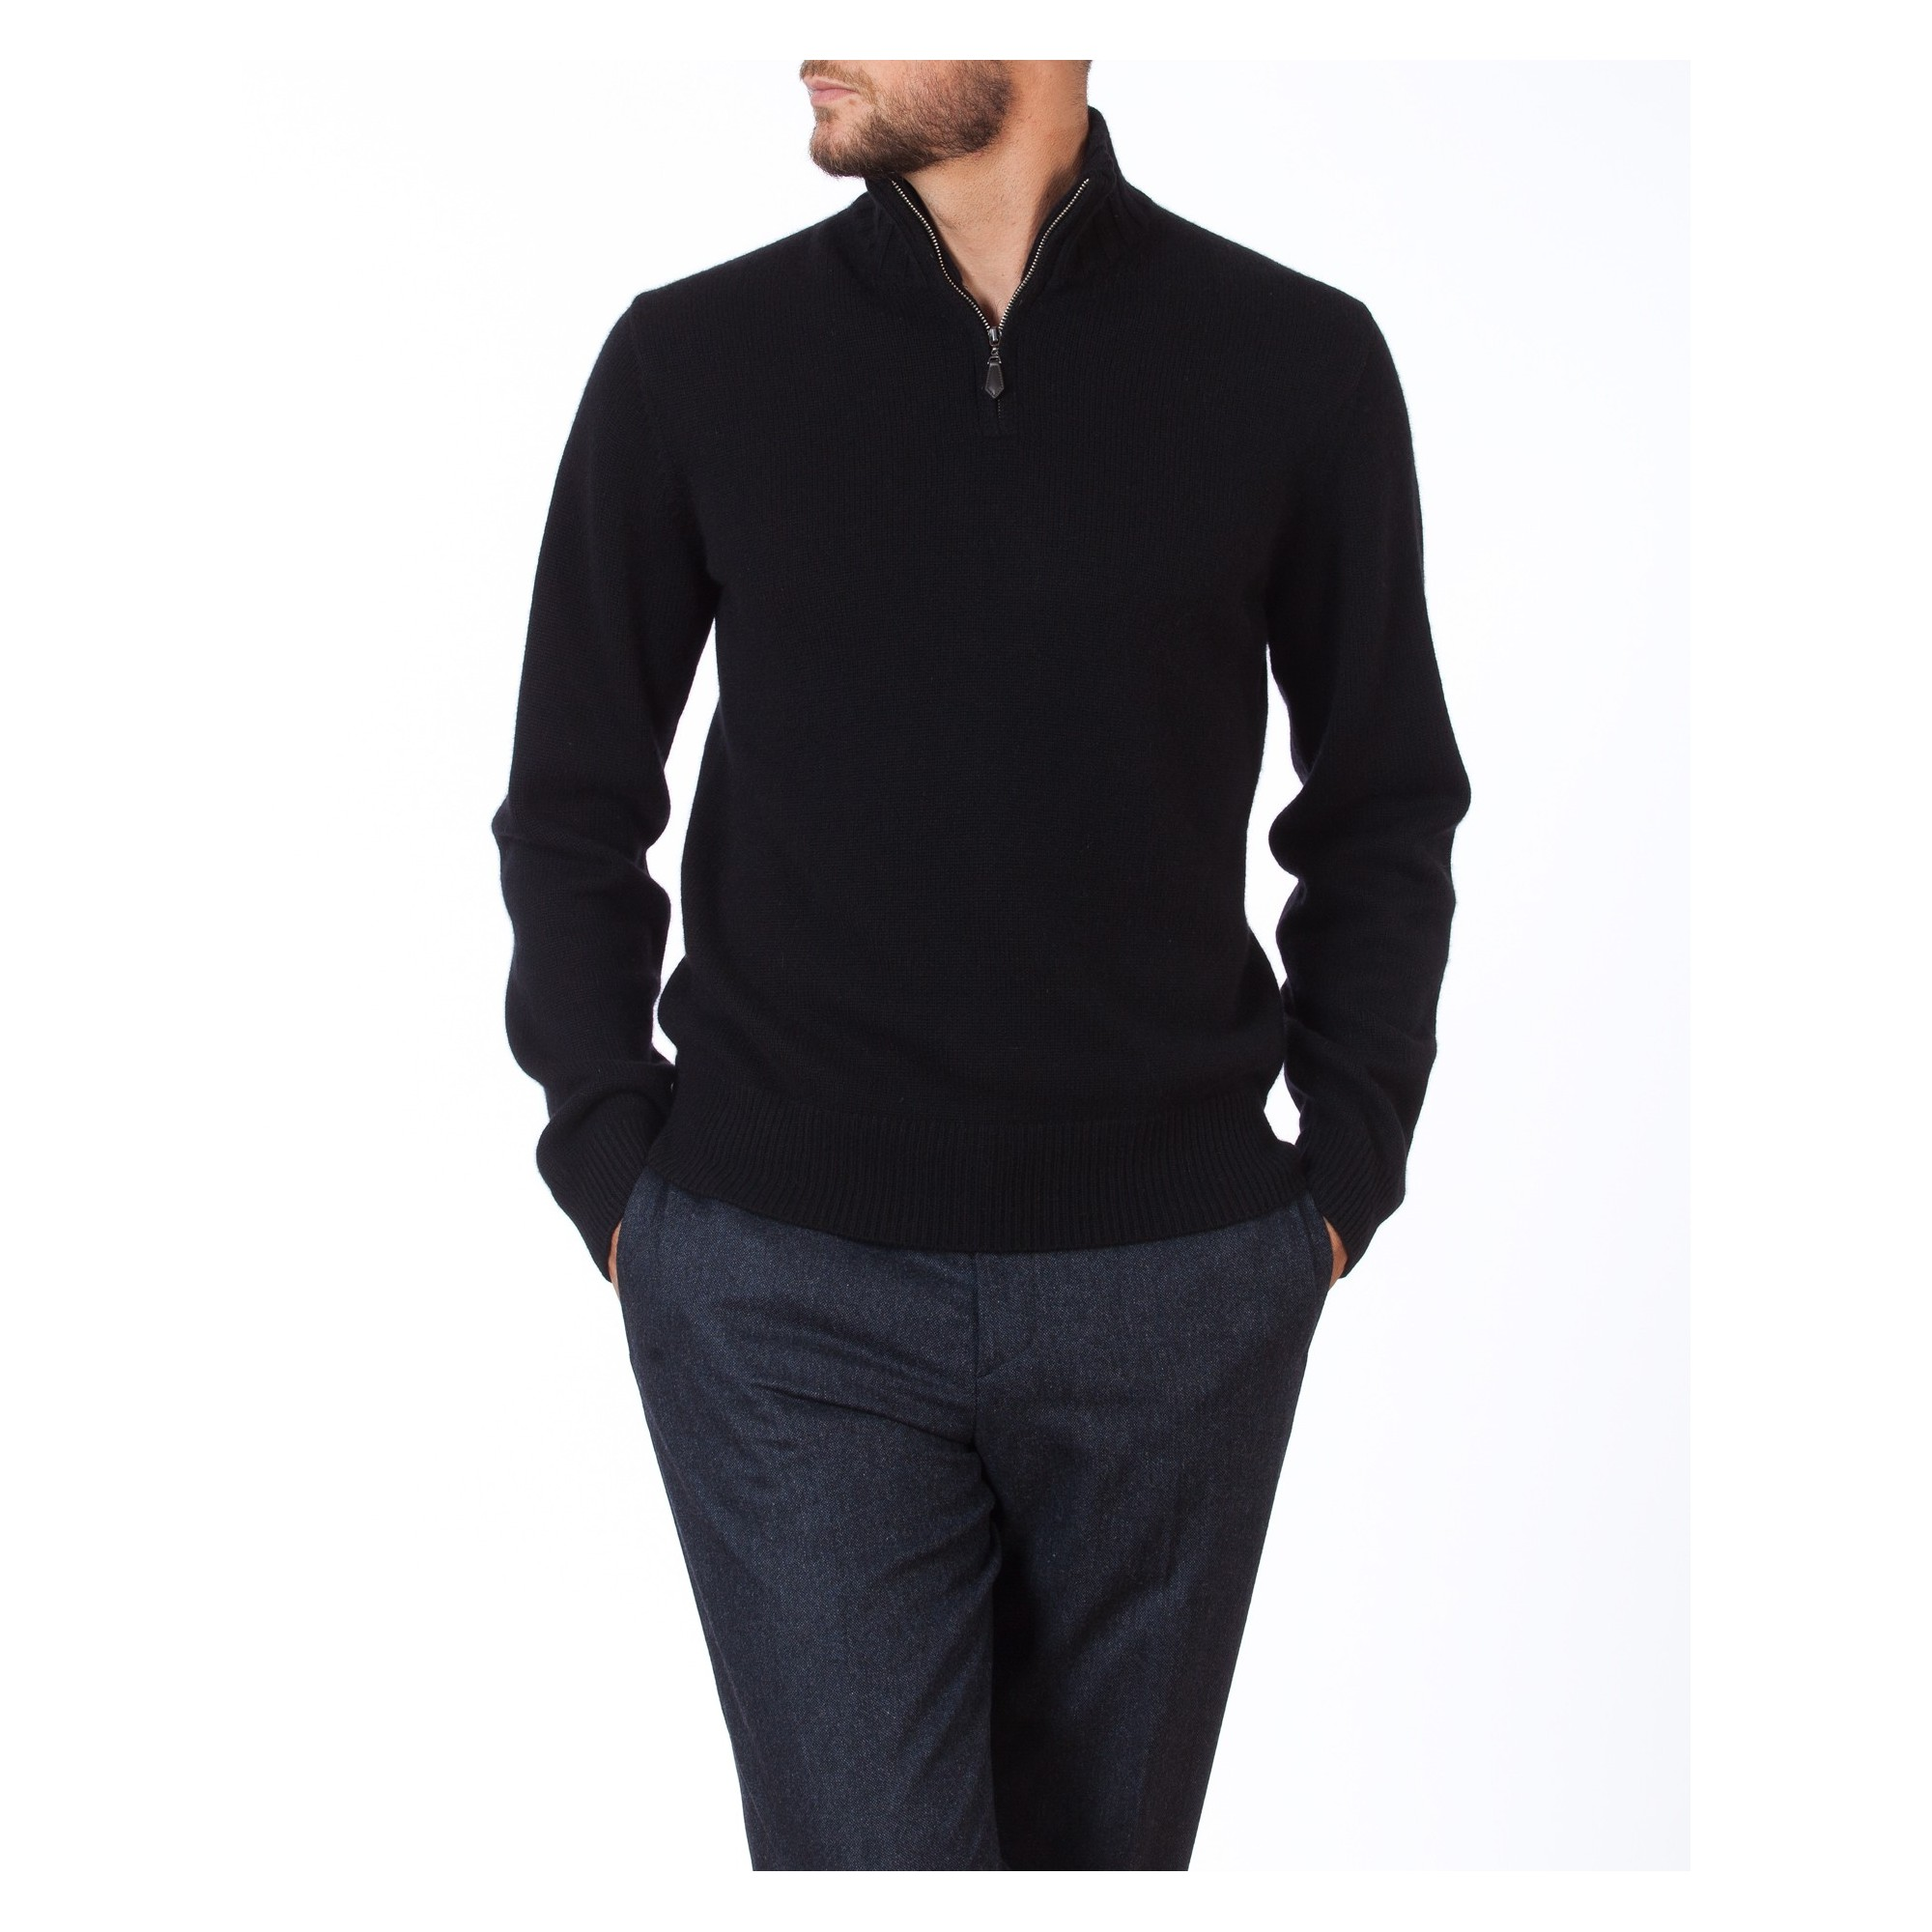 74ef00ba6 Man s zipped collar pullover of quality made of cashmere